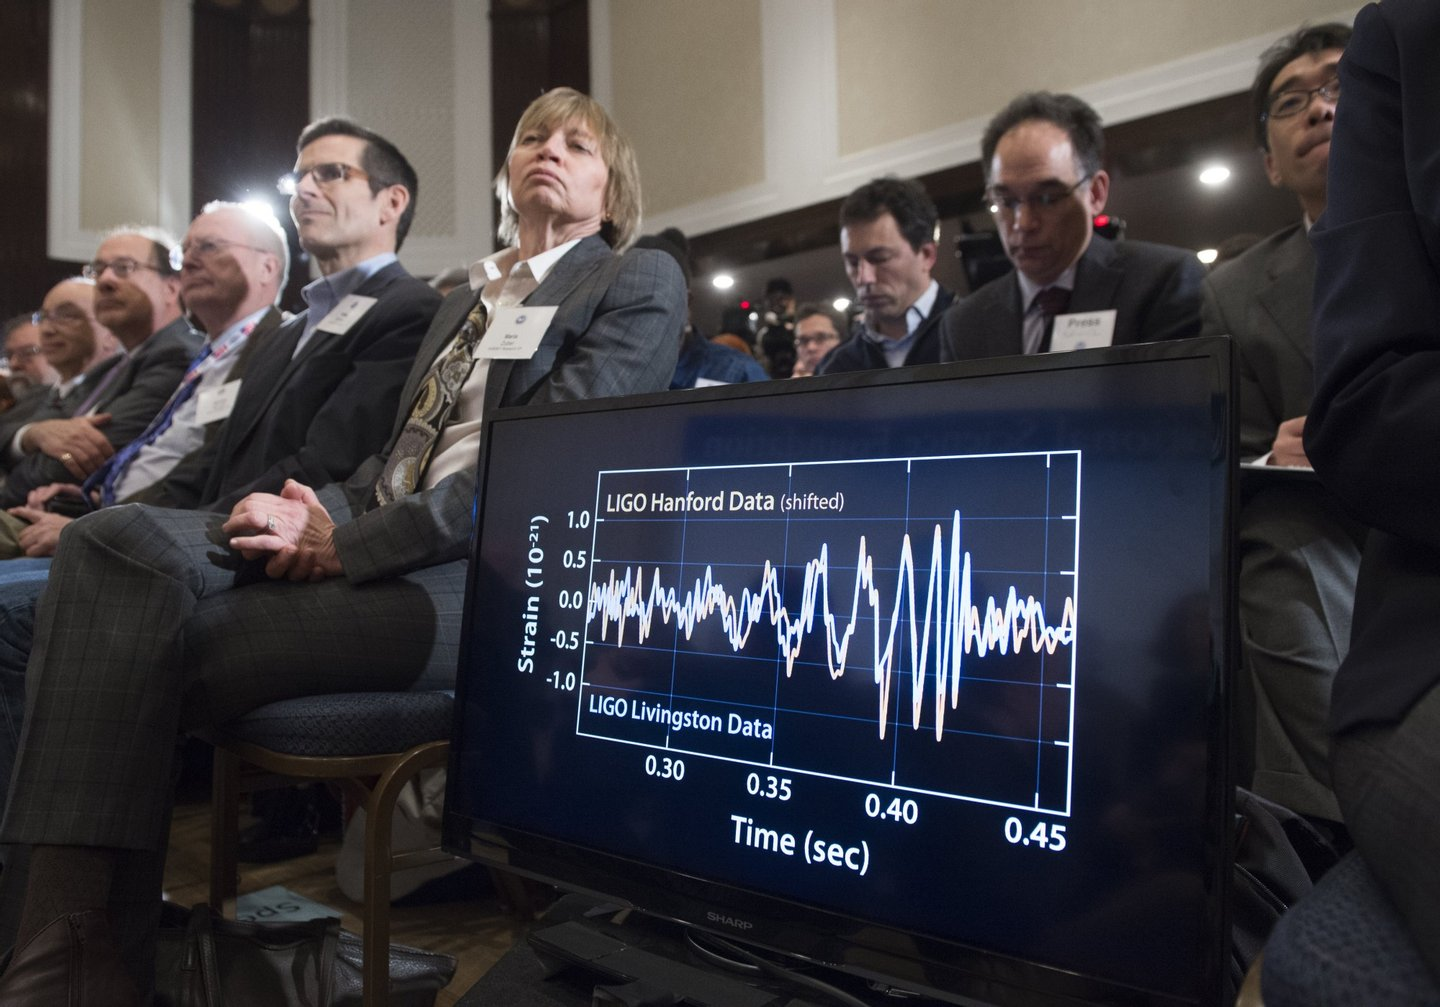 A screen displays a diagram showing the ripples in the fabric of spacetime called gravitational waves that scientists have observed for the first time by the LIGO detector, confirming a prediction of Albert Einstein's theory of relativity, during a press conference at the National Press Club in Washington, DC, February 11, 2016. The machines that gave scientists their first-ever glimpse at gravitational waves are the most advanced detectors ever built for sensing tiny vibrations in the universe.The two US-based underground detectors are known as the Laser Interferometer Gravitational-wave Observatory, or LIGO for short. / AFP / SAUL LOEB (Photo credit should read SAUL LOEB/AFP/Getty Images)